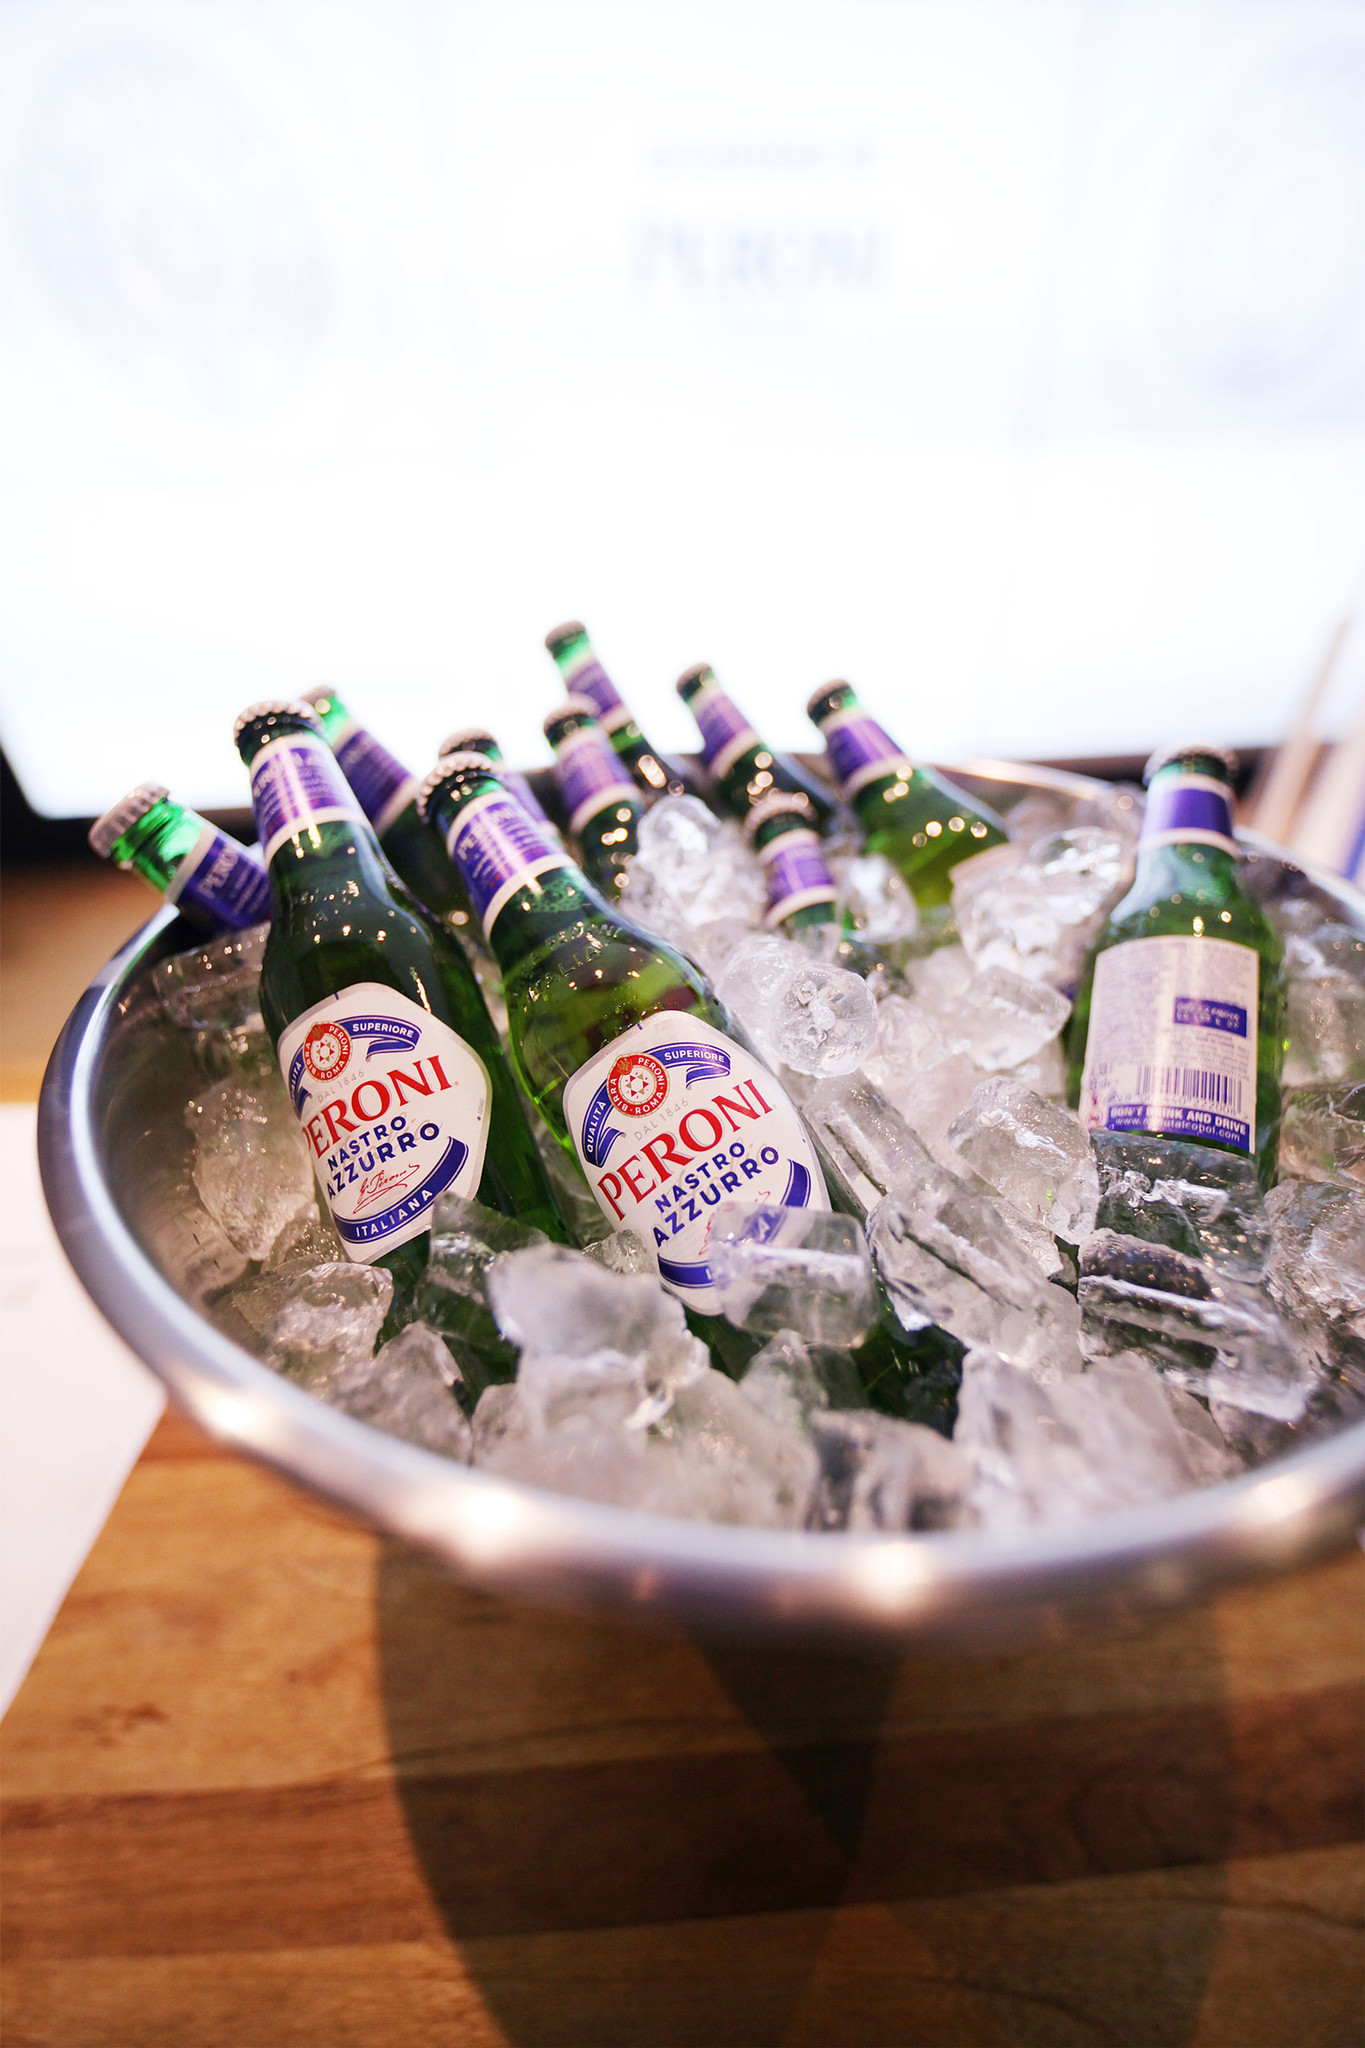 Ice bucket filled with Peroni beers